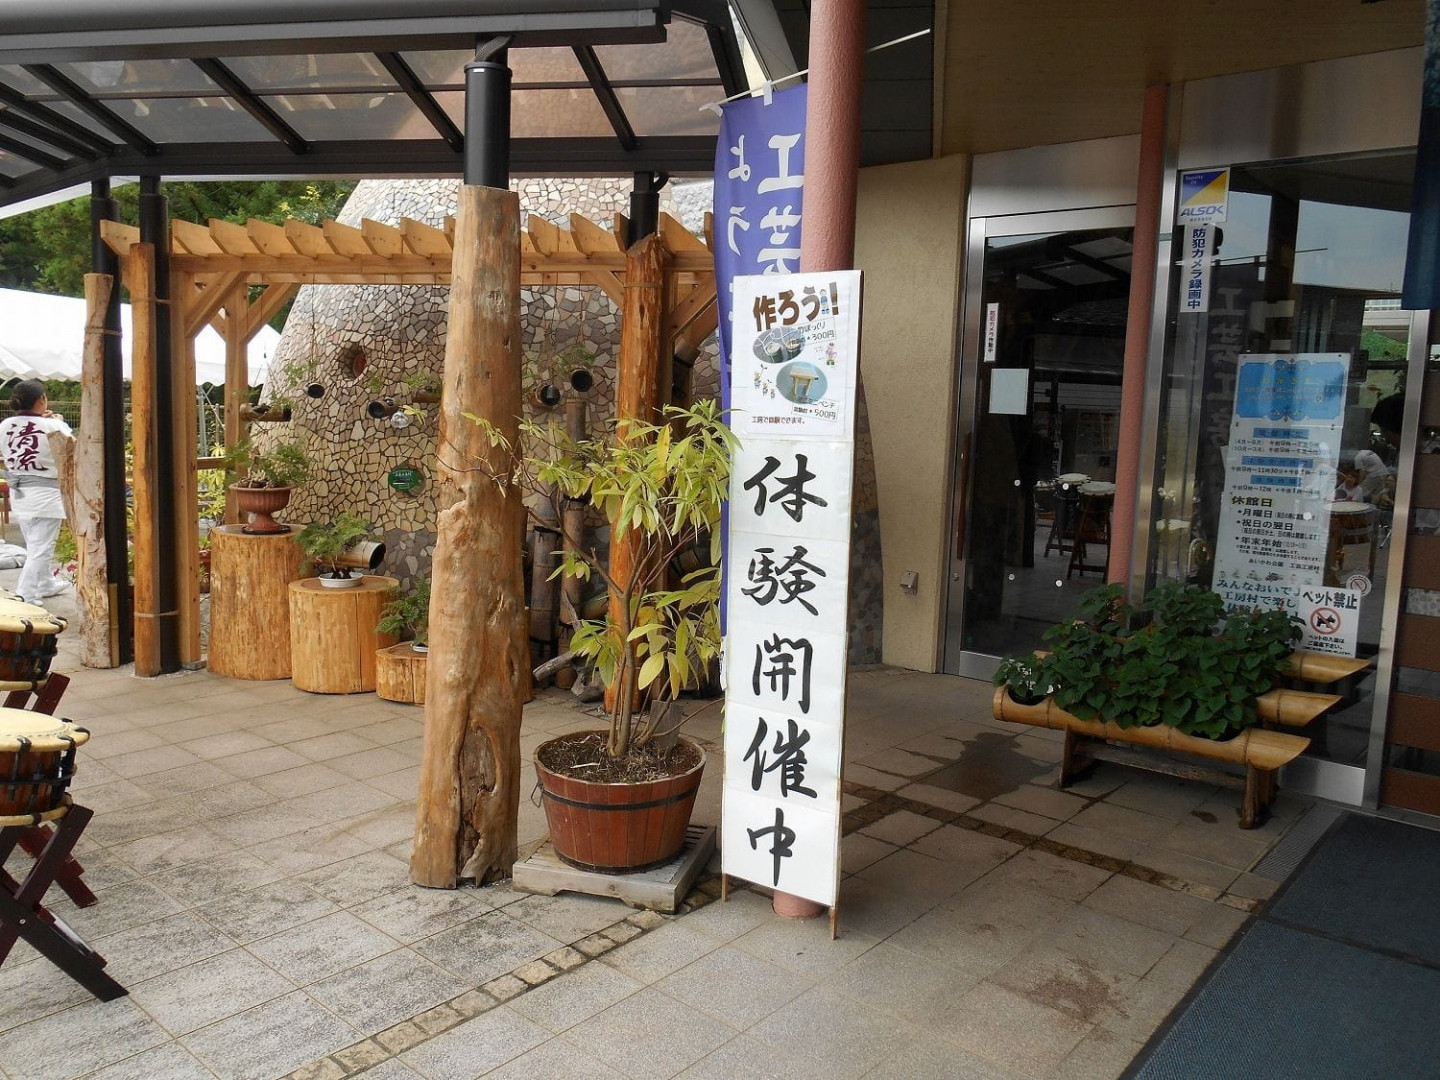 The entrance to the Kogei Kobo Mura. The sign says